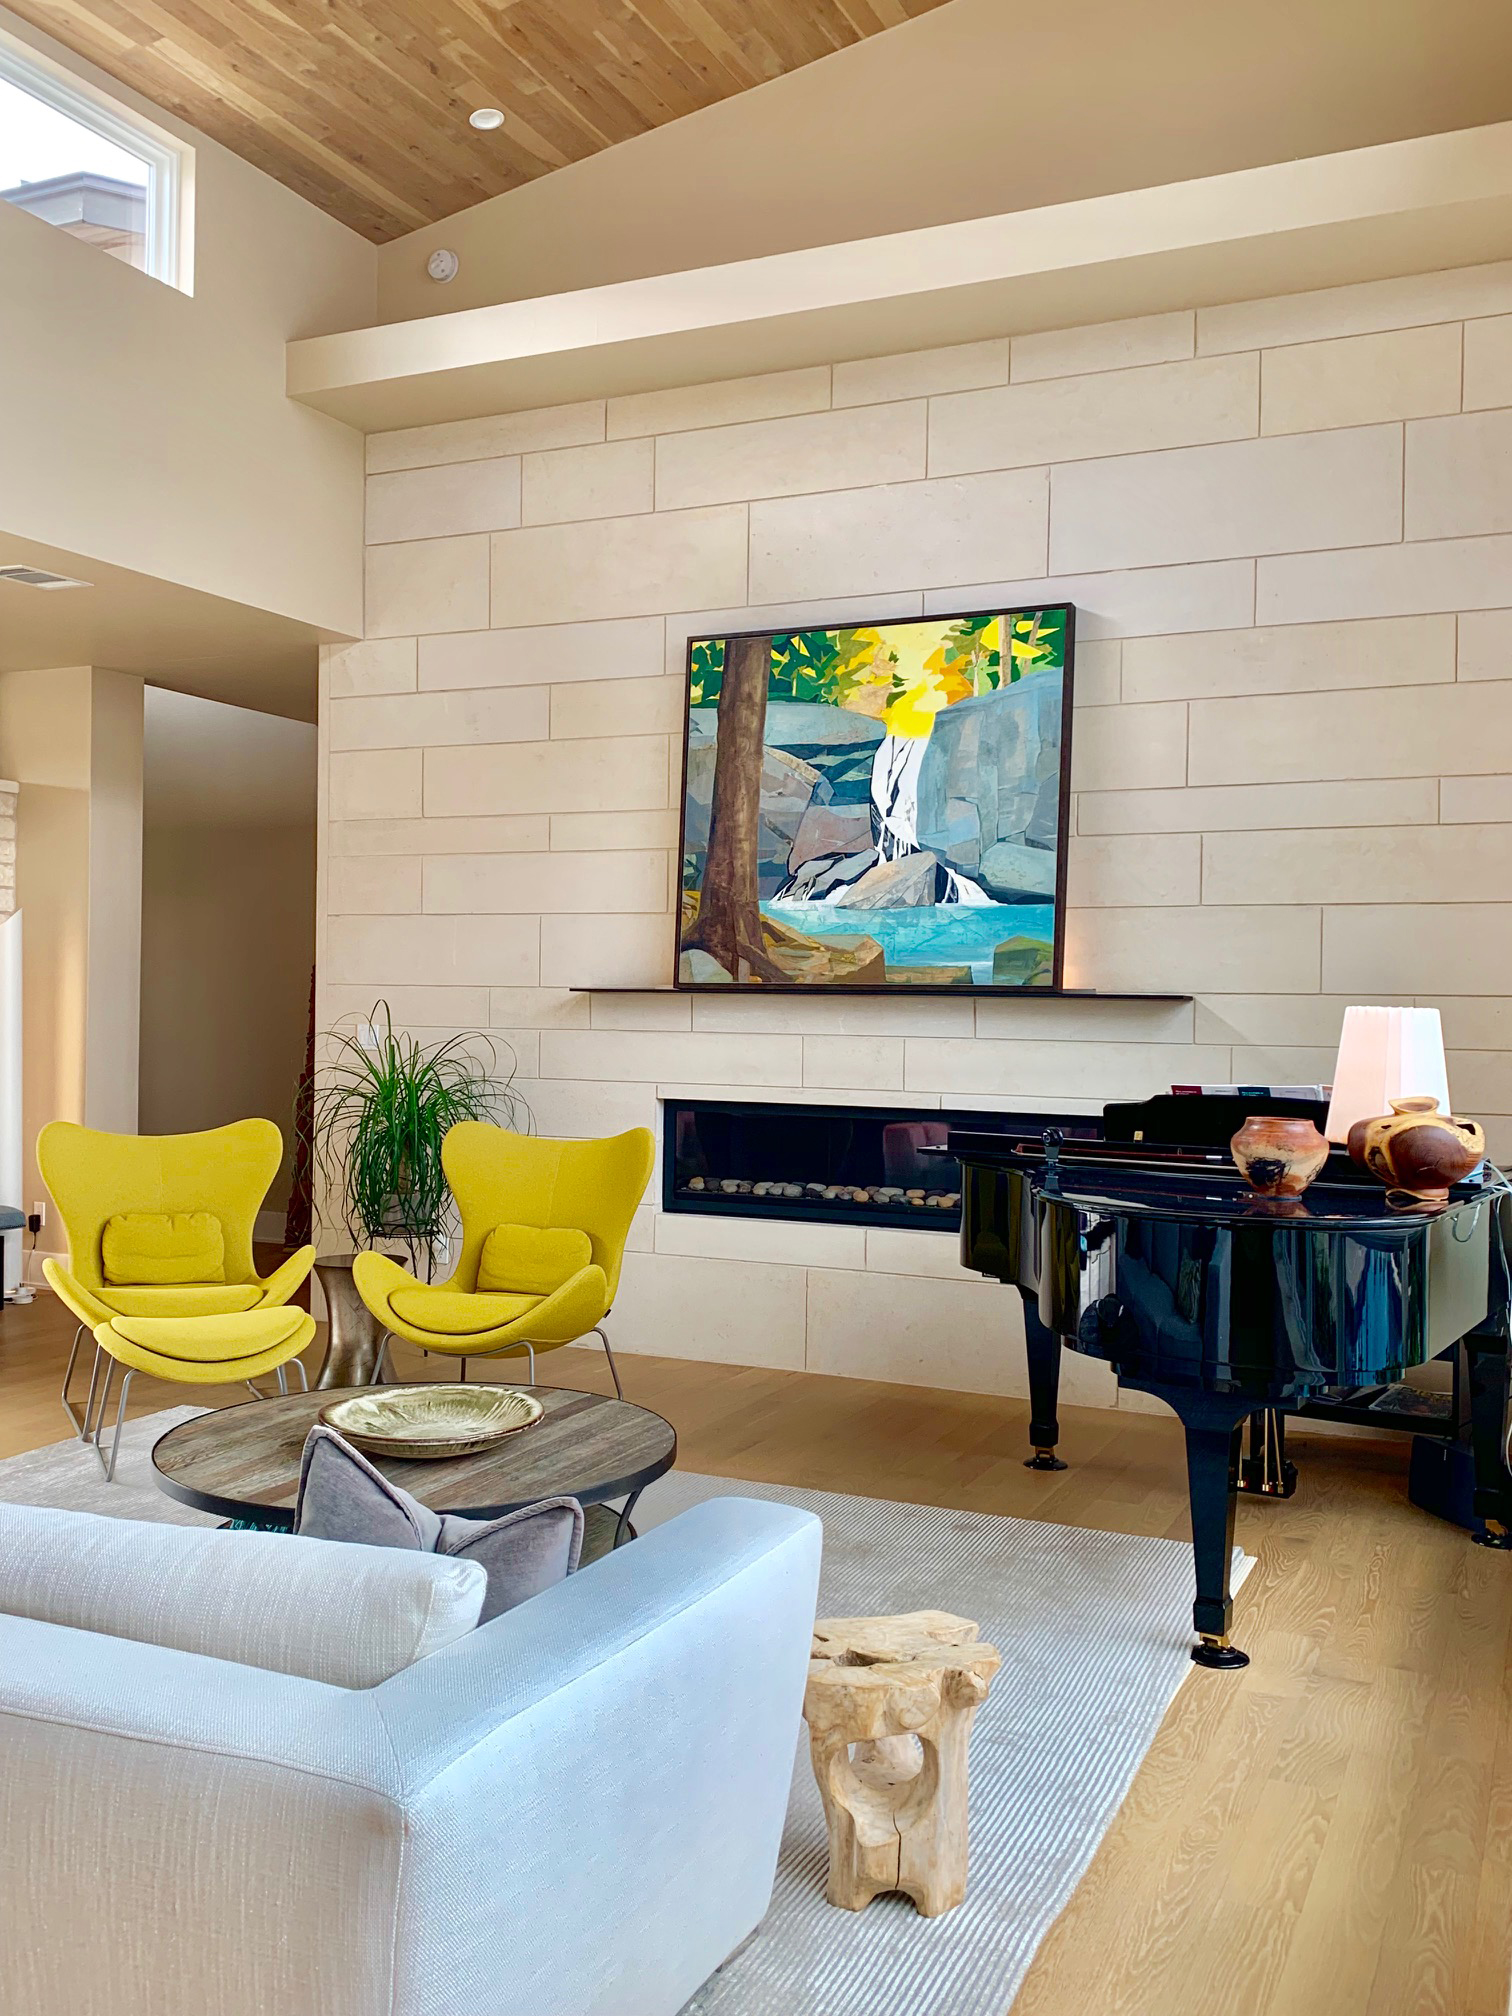 INSTALLATION SHOT: It's Your Brook I have Nothing More to Say, has found a beautiful new home in Texas.